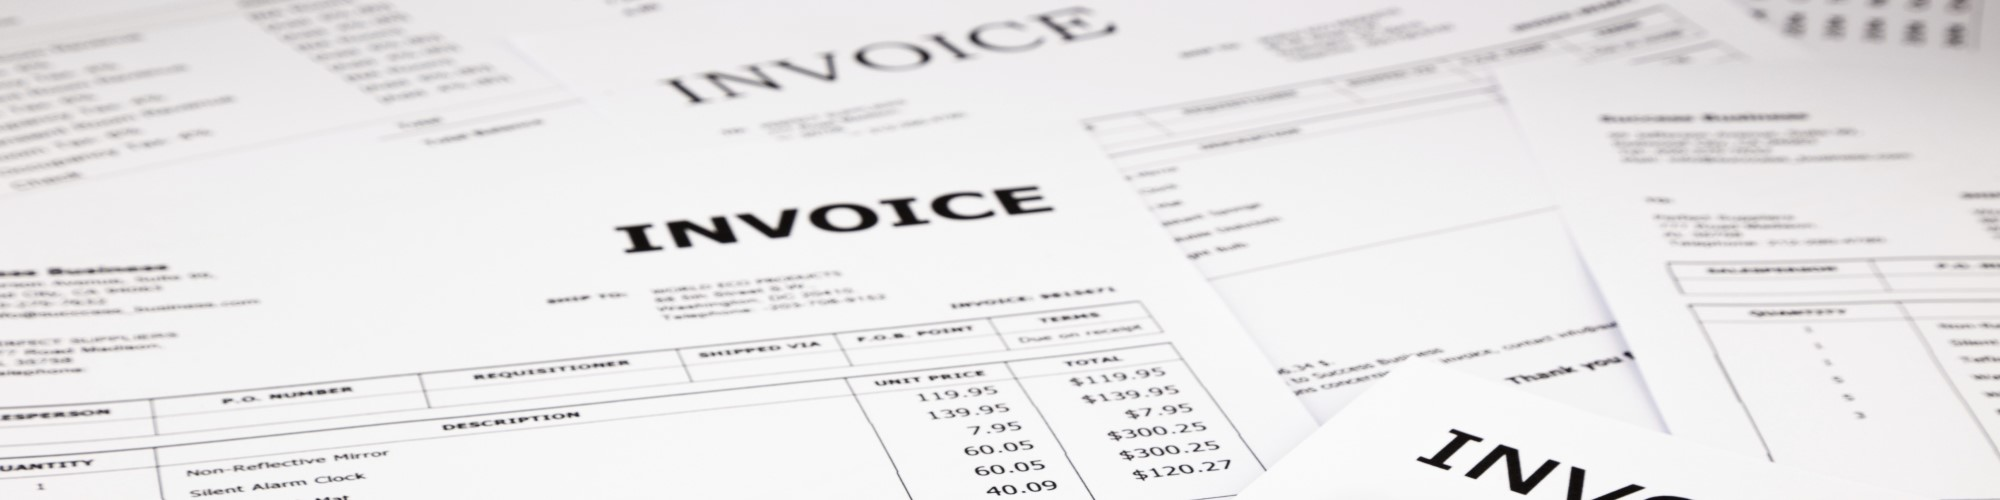 Invoice Automation Software for Accounts Payable Processing